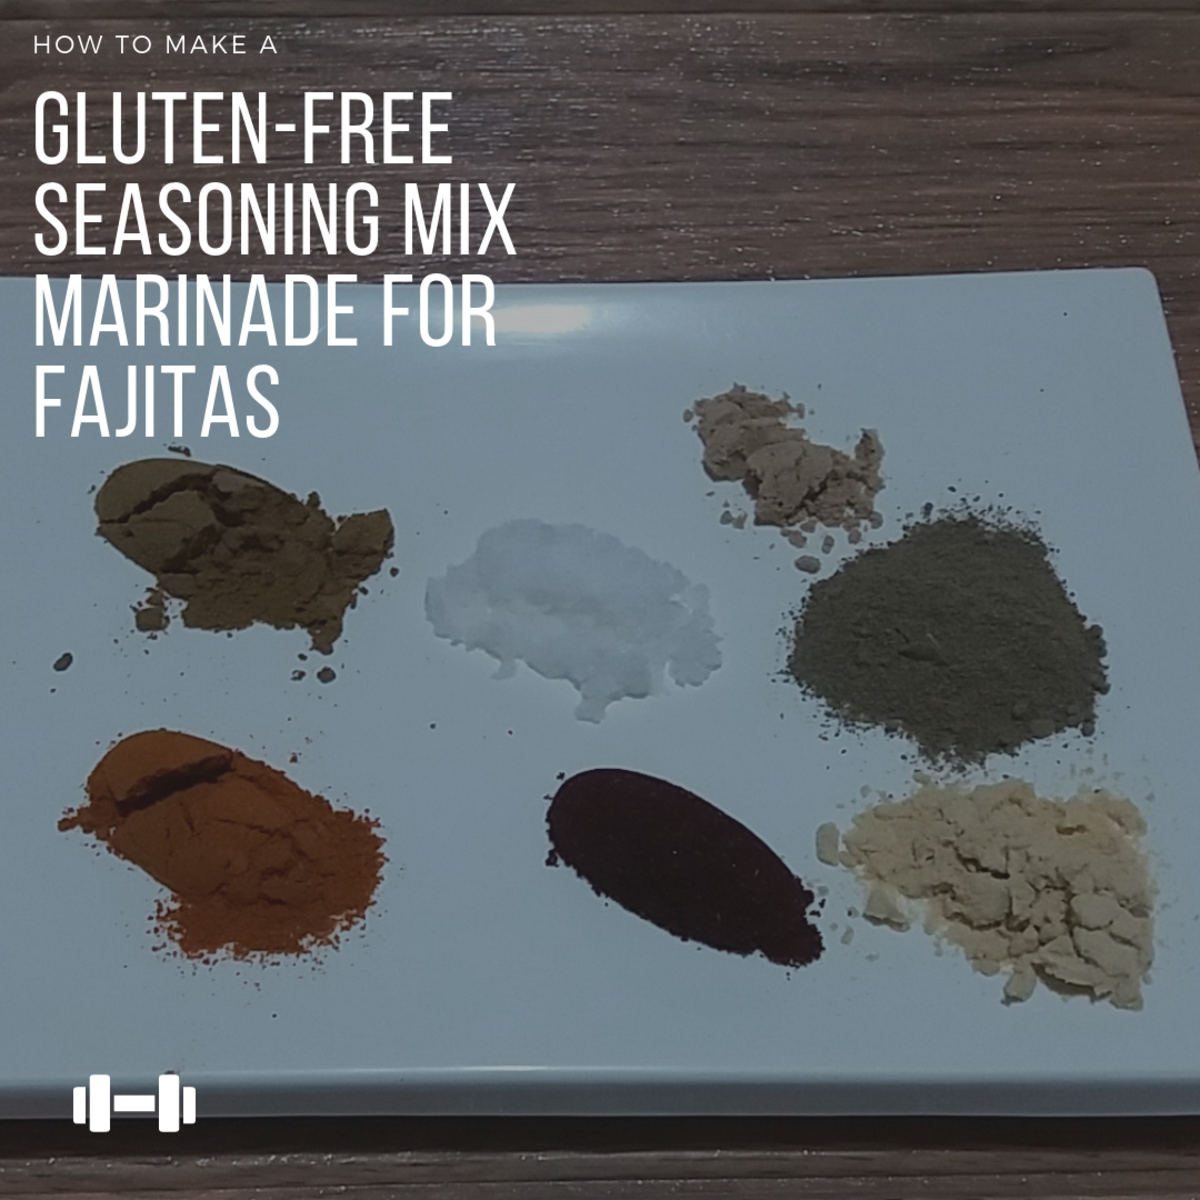 How to Make a Gluten-Free Seasoning Mix Marinade for Fajitas